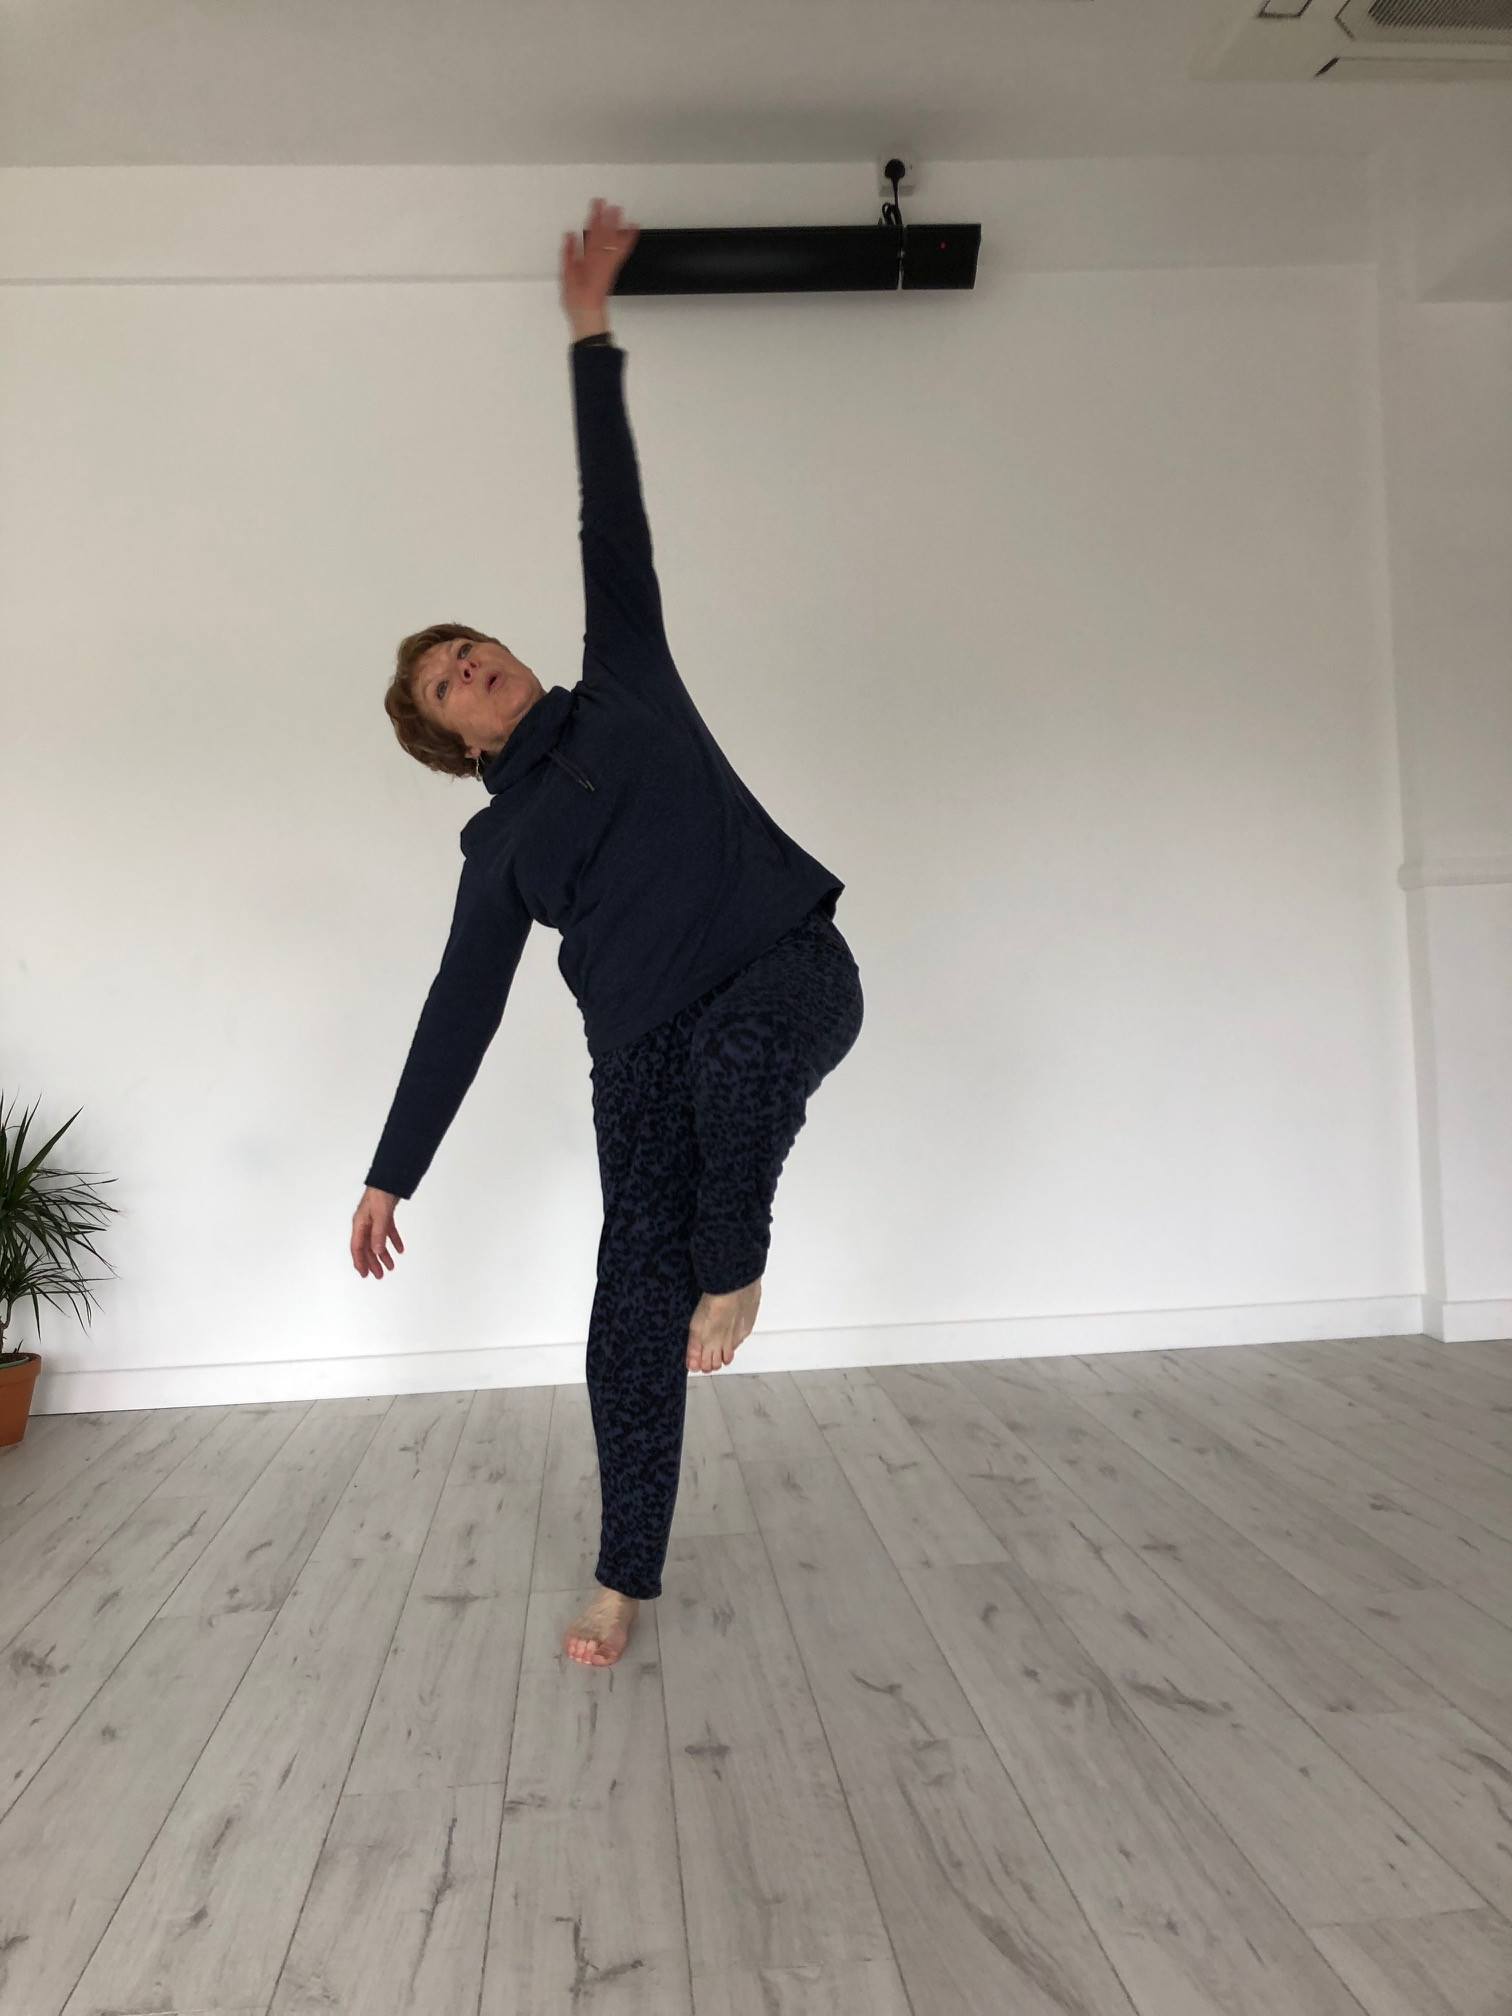 Dance for Well-Being Geraldine Wed 1pm